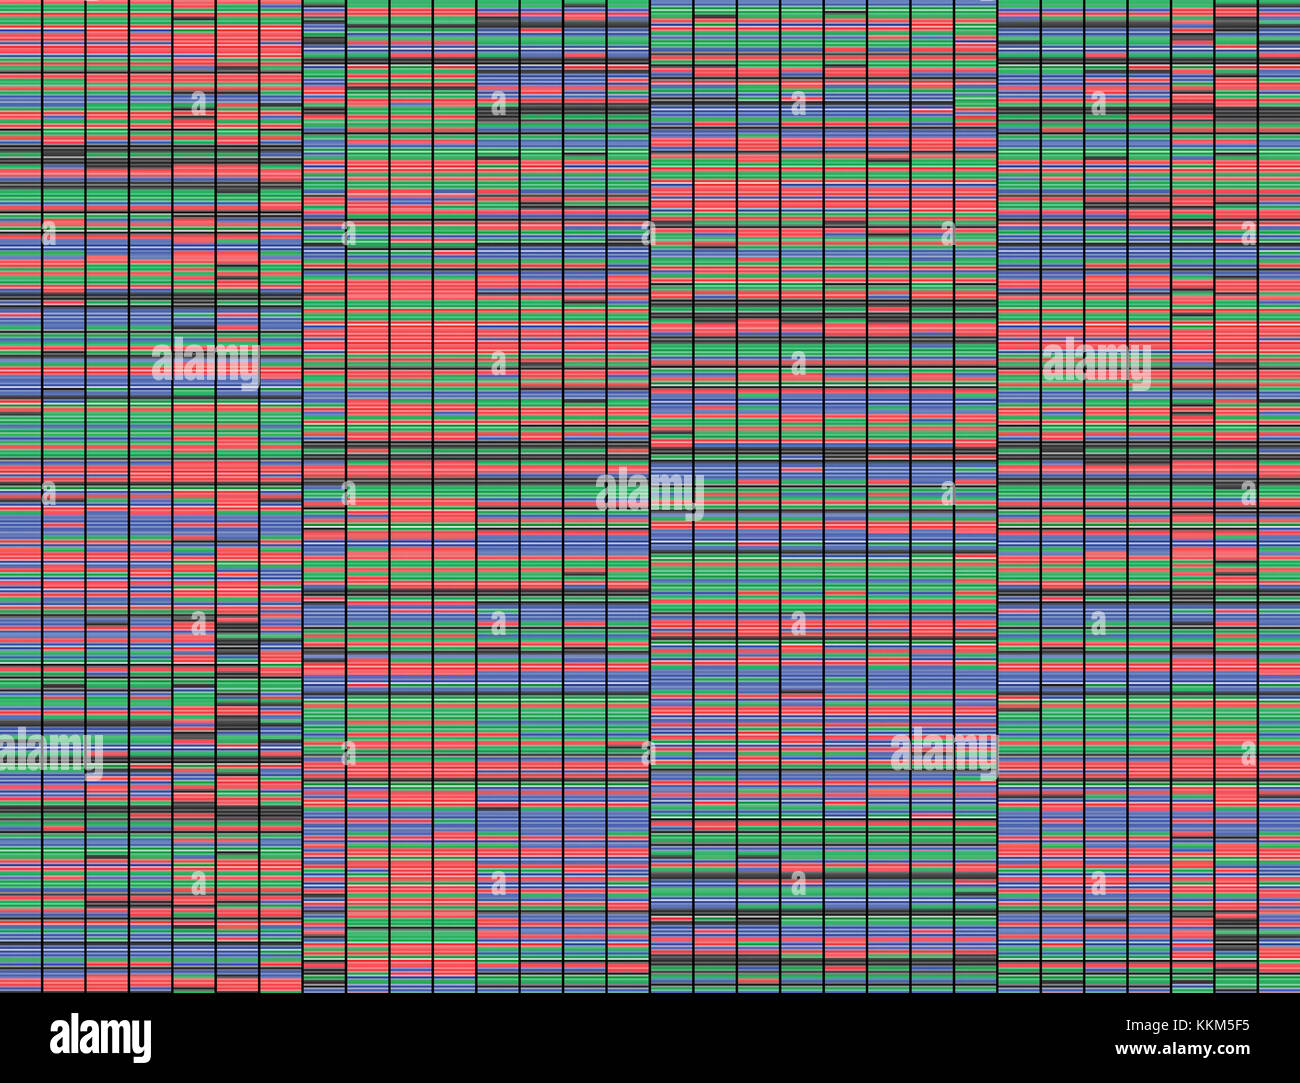 Illustration of a method of colored DNA sequencing. - Stock Image